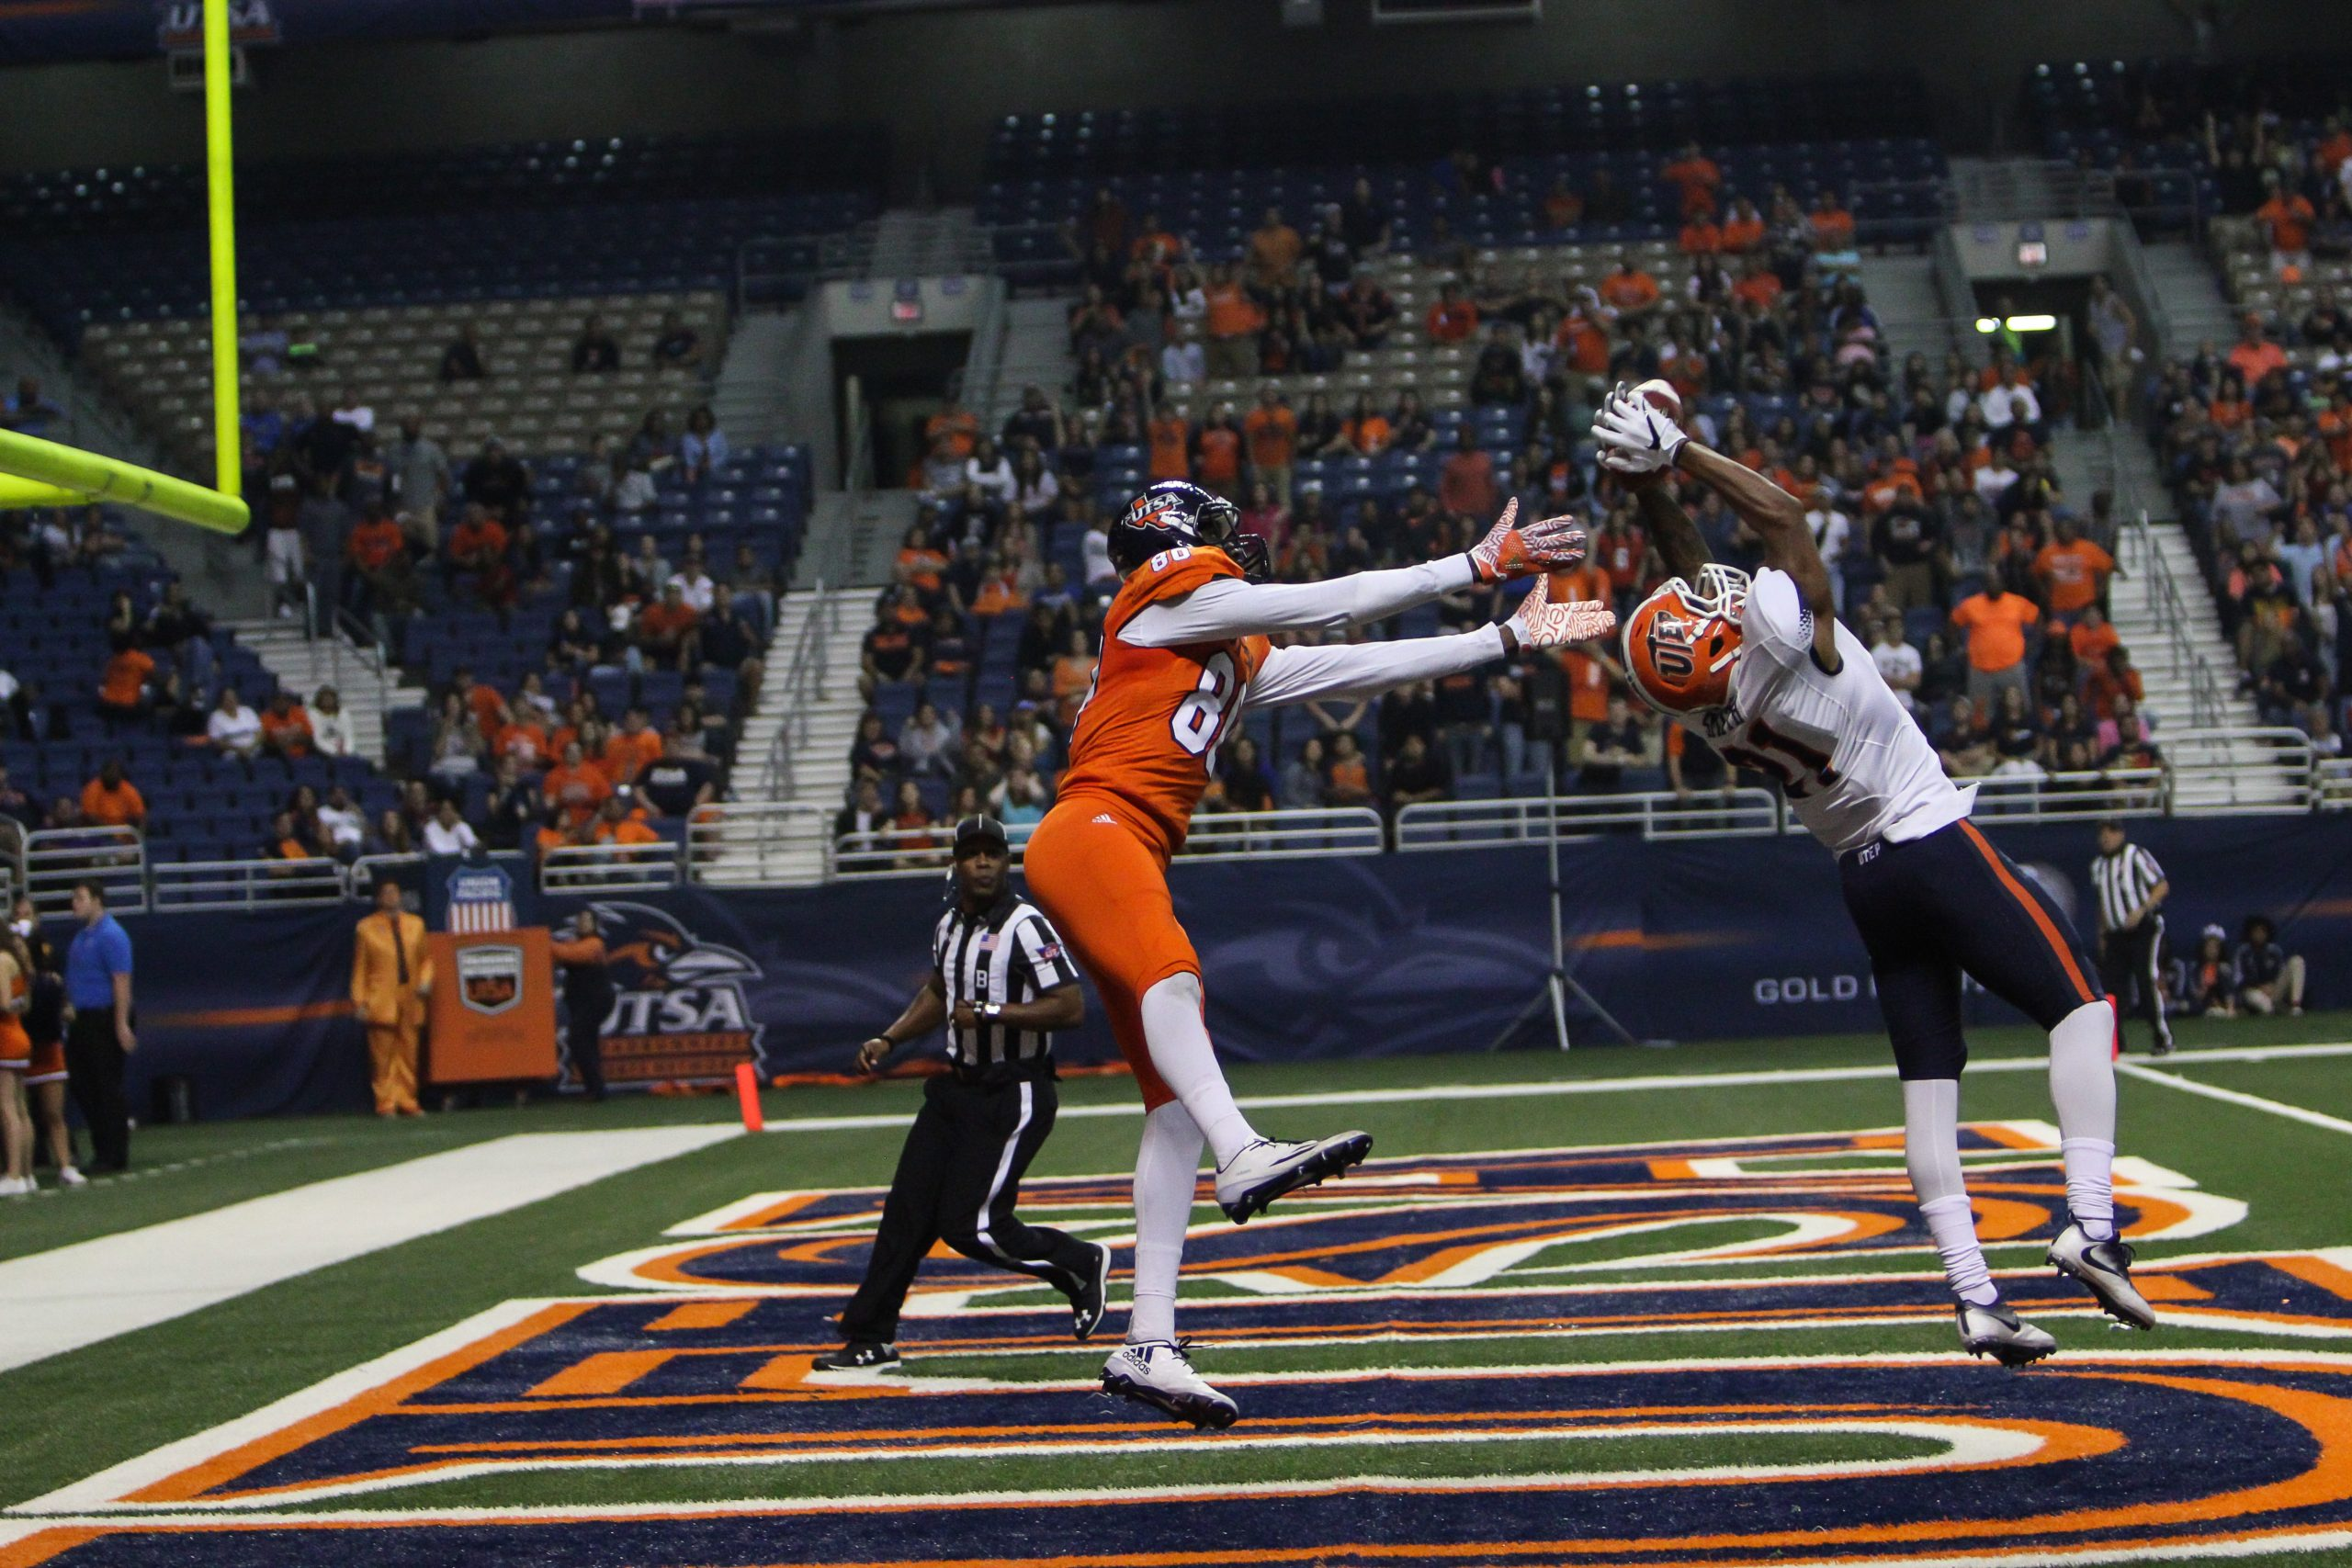 Defensive back Dashone Smith of UTEP intercepts a pass to wide reciever Josh Stewart in the second half of Saturday's game between UTSA and UTEP at the Alamodome. UTSA lost in quintuple-overtime 52-49. David Guel, The Paisano